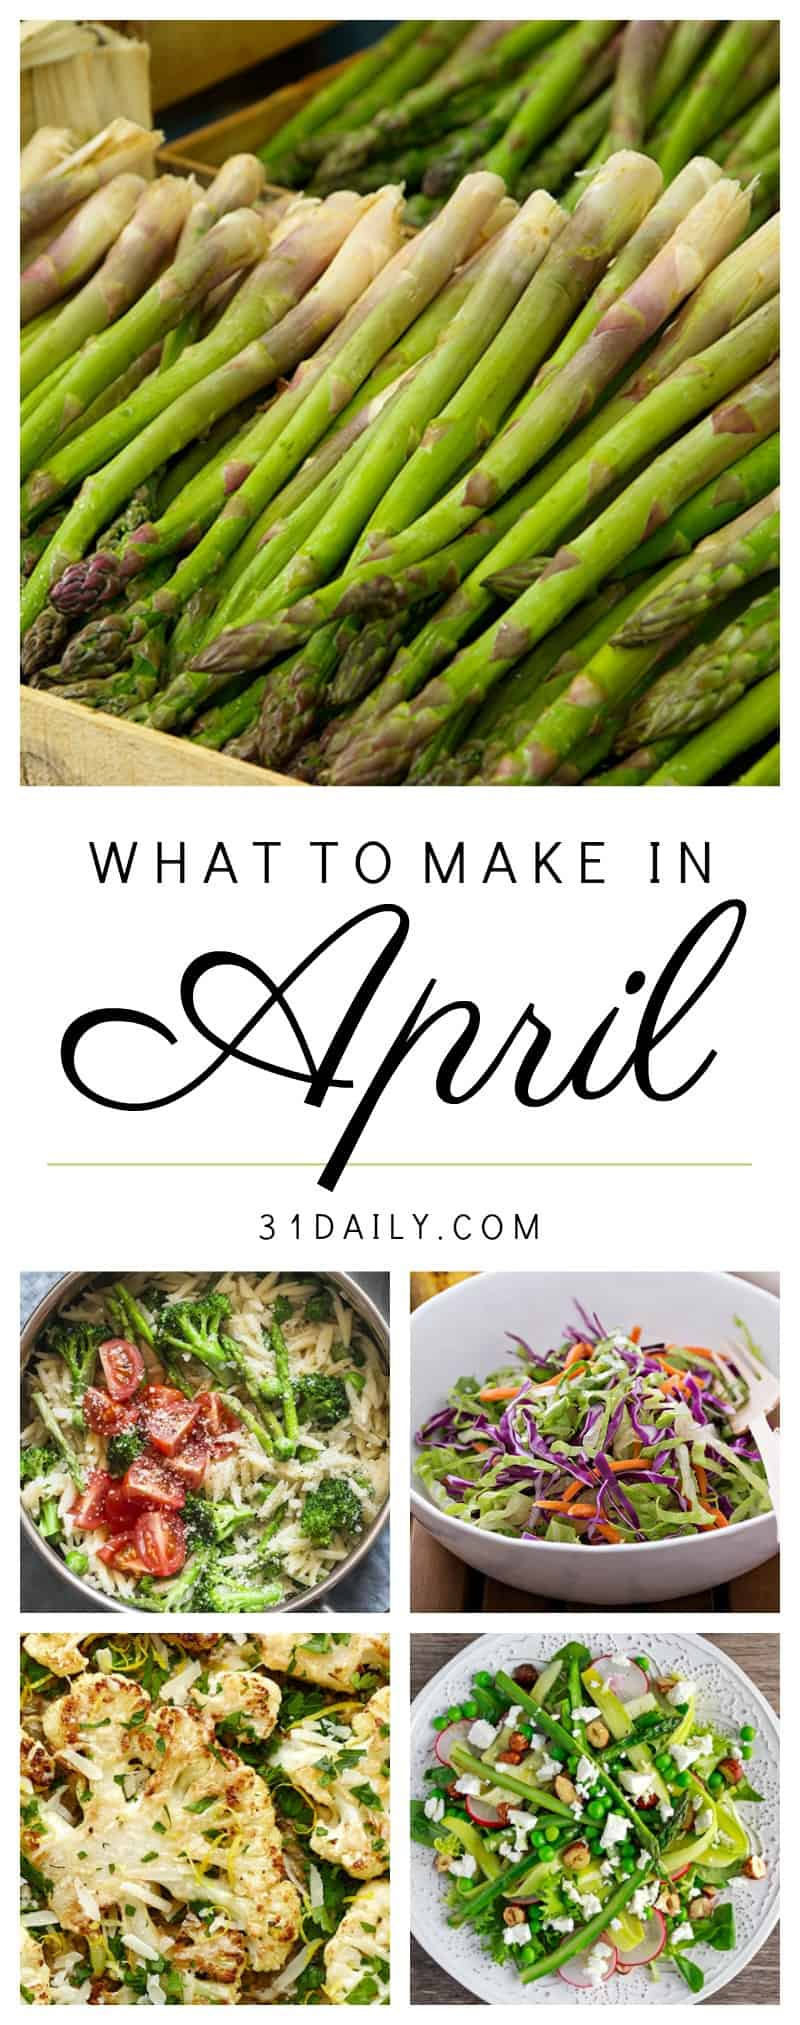 What to Cook this April with Seasonal Fresh Recipes | 31Daily.com